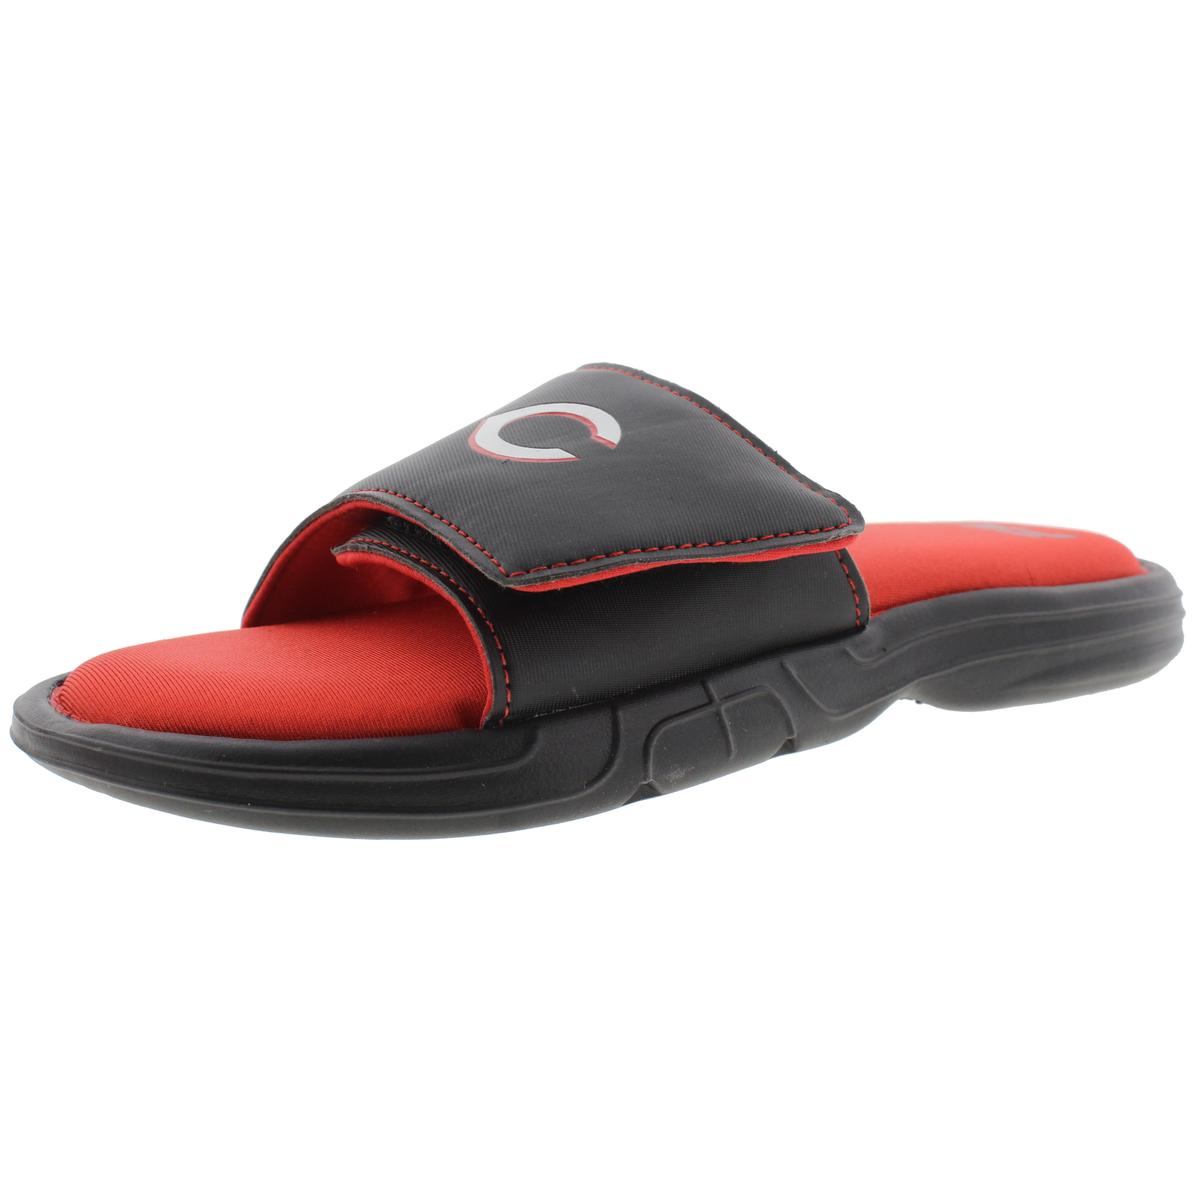 Fila Mens MLB Hudson Memory Foam Printed Slide Sandals by Fila